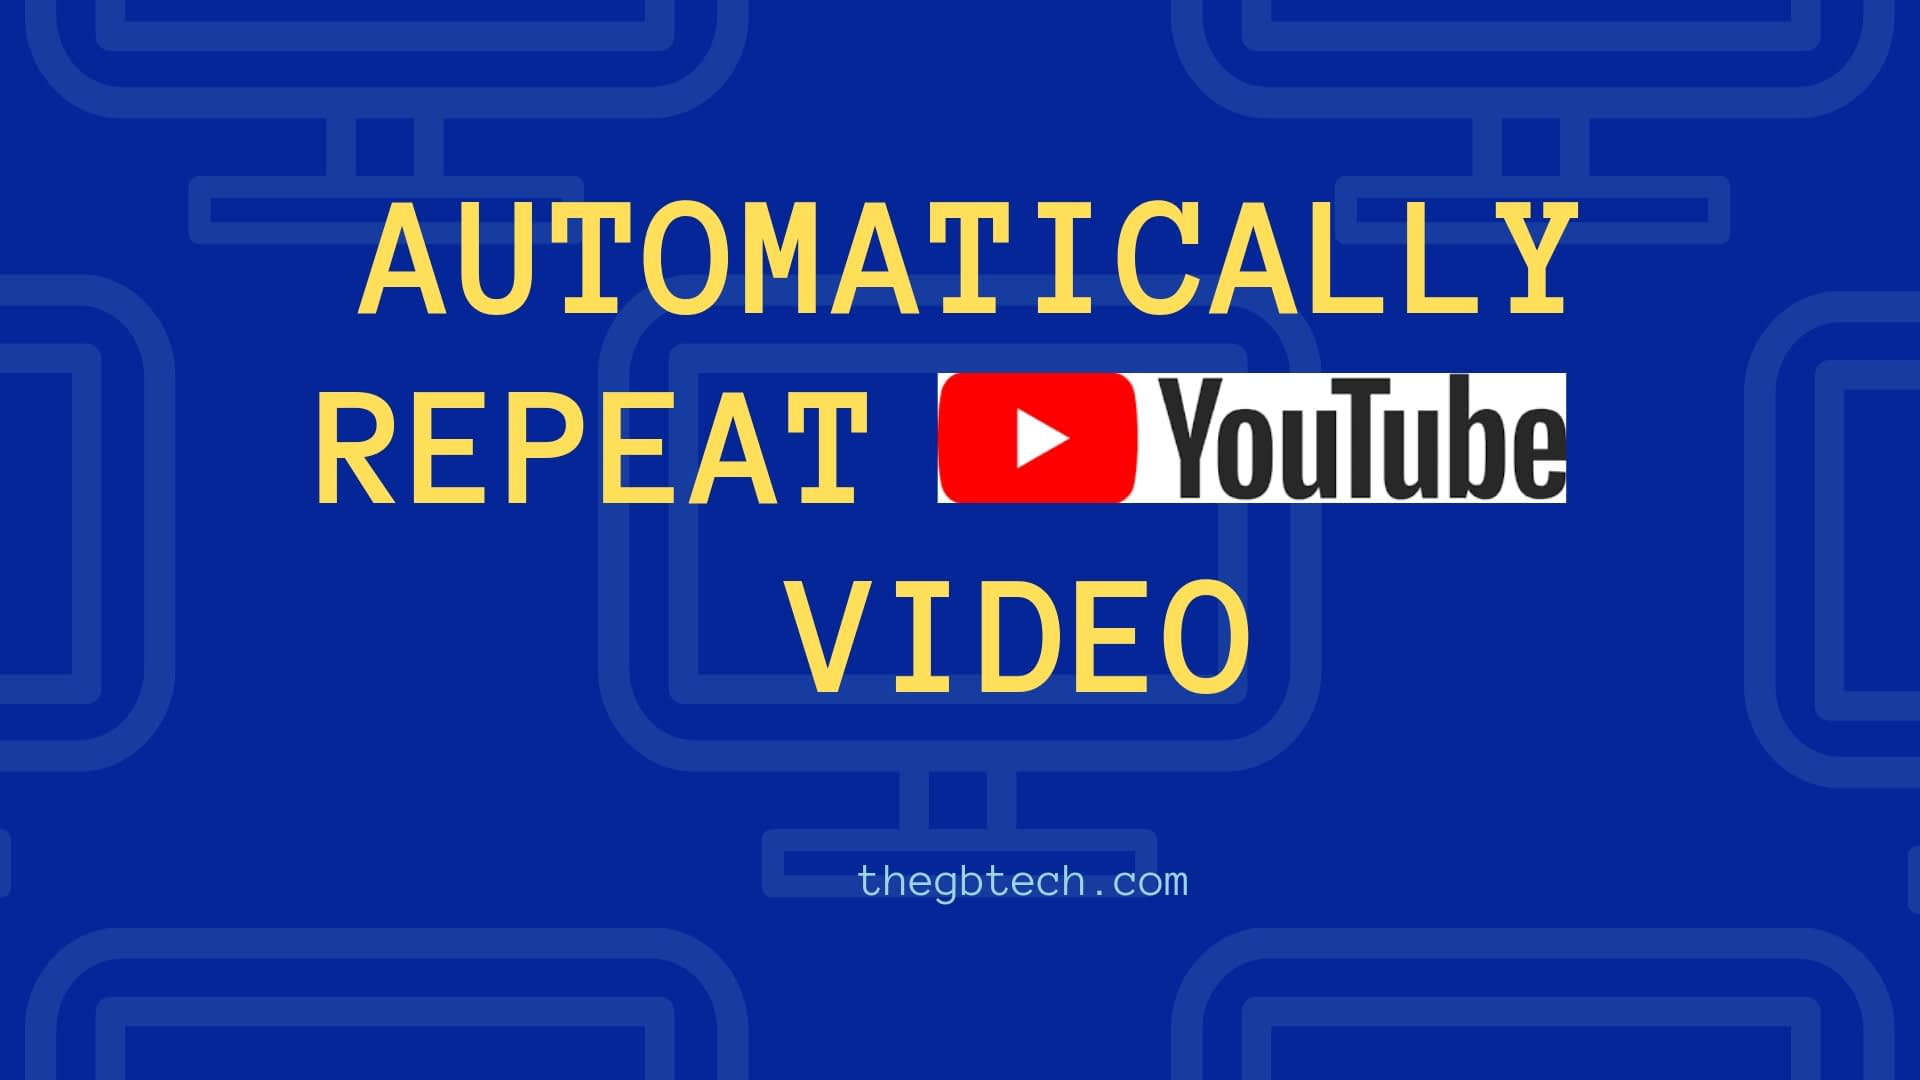 How to Automatically Repeat YouTube Video Easily